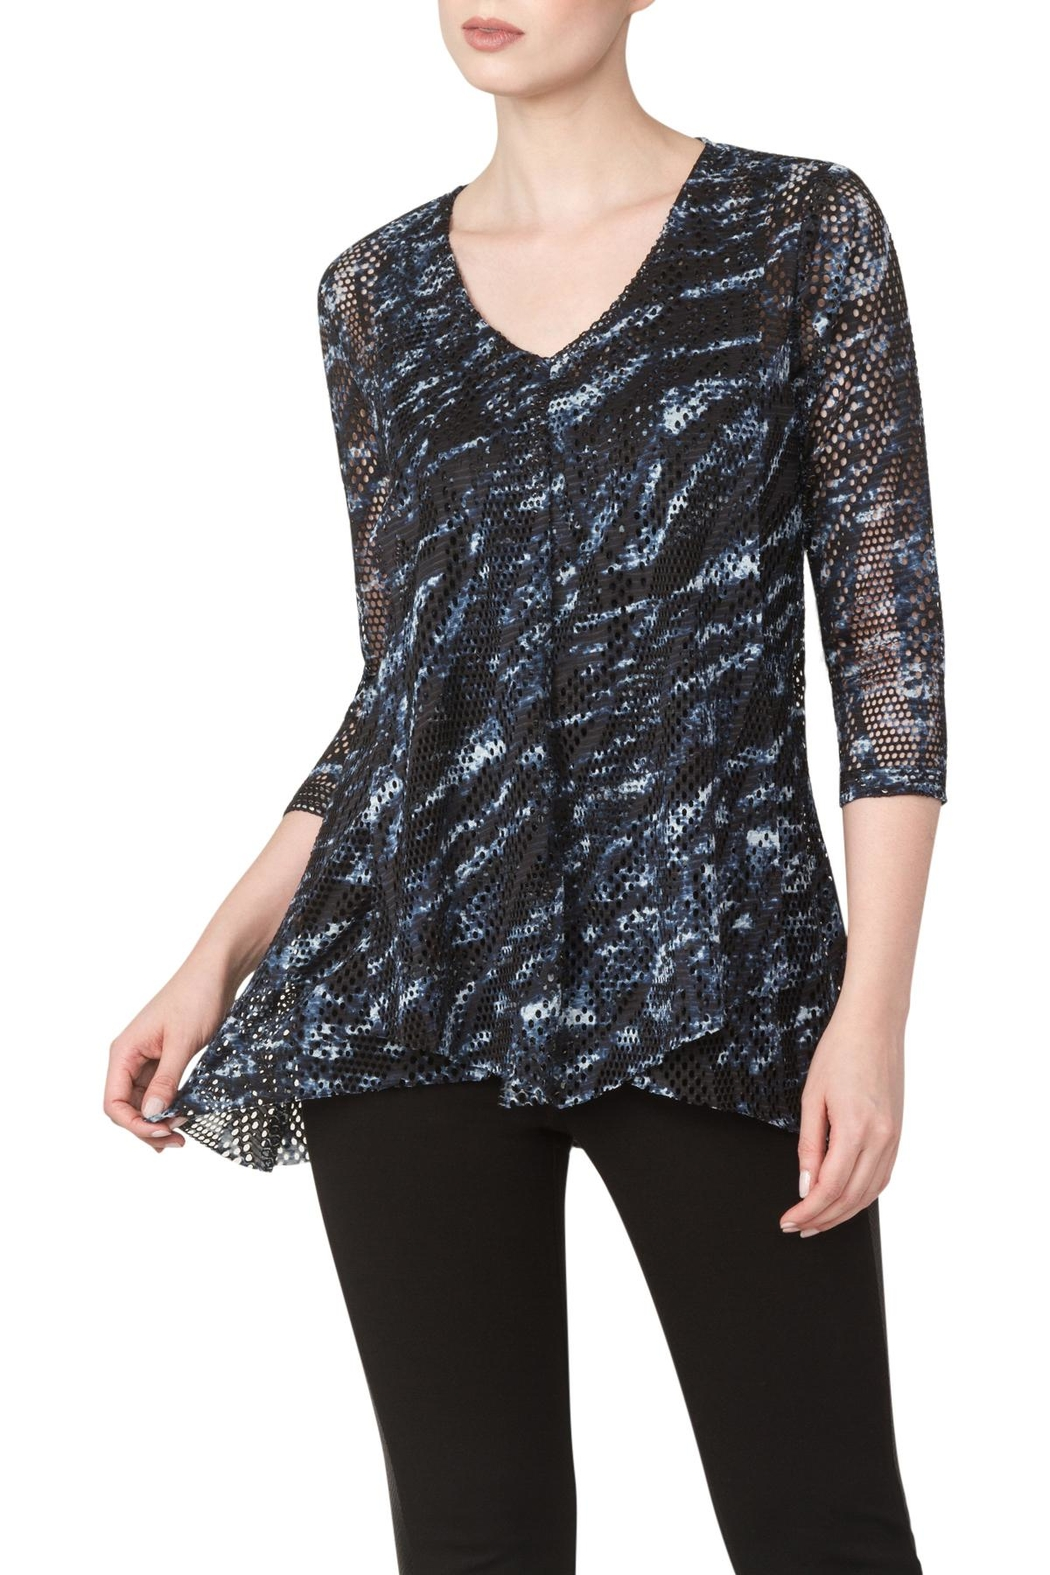 Yvonne Marie Denim Mesh Draped Top - Front Cropped Image